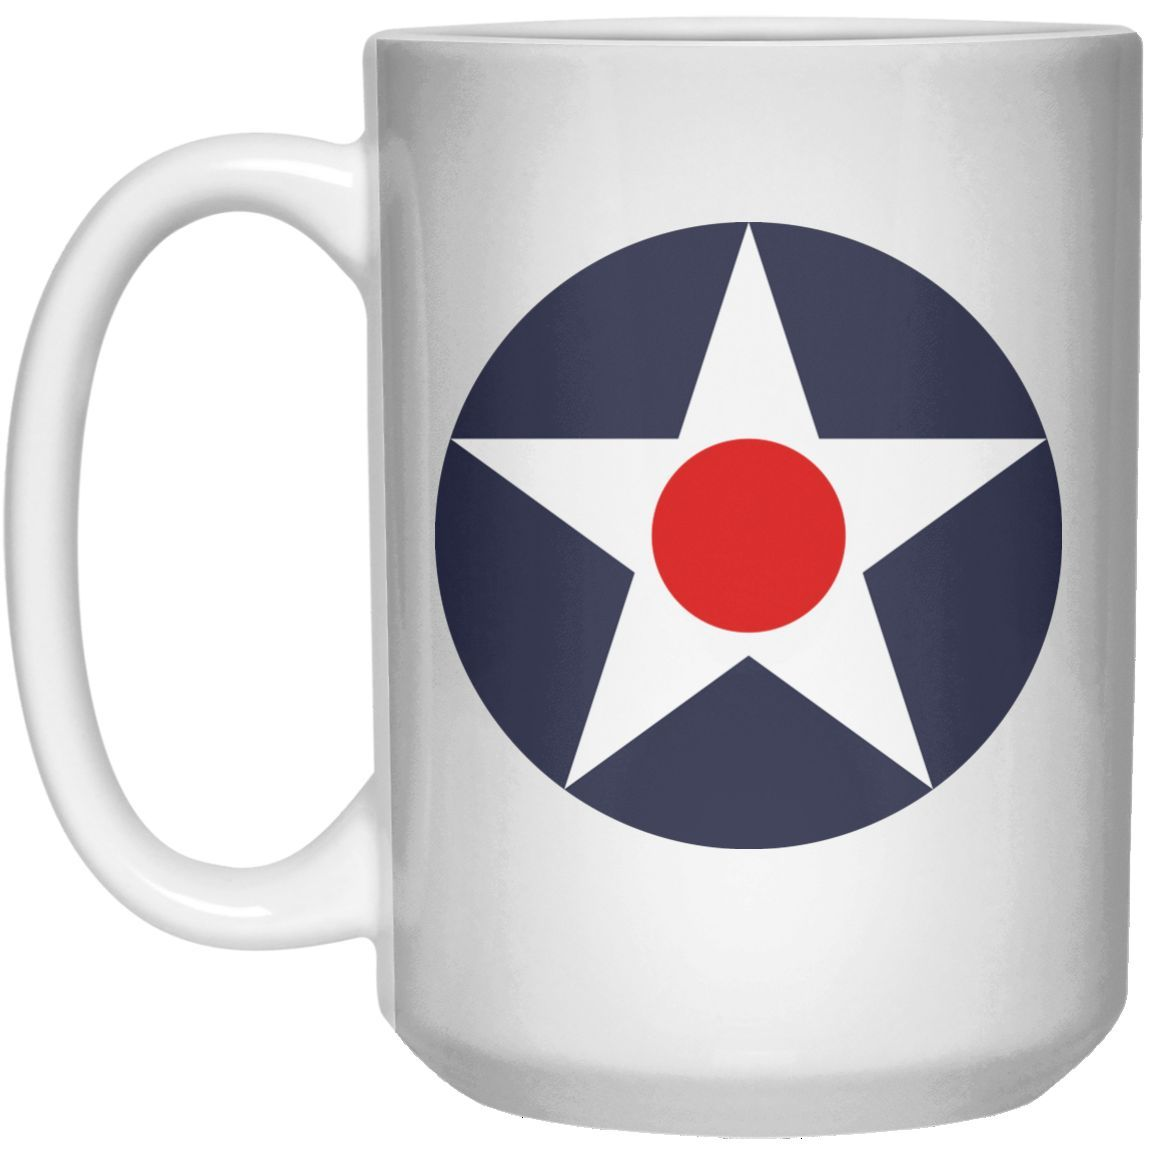 Us army air corps roundel mug 15oz products pinterest products us army air corps roundel mug 15oz biocorpaavc Gallery